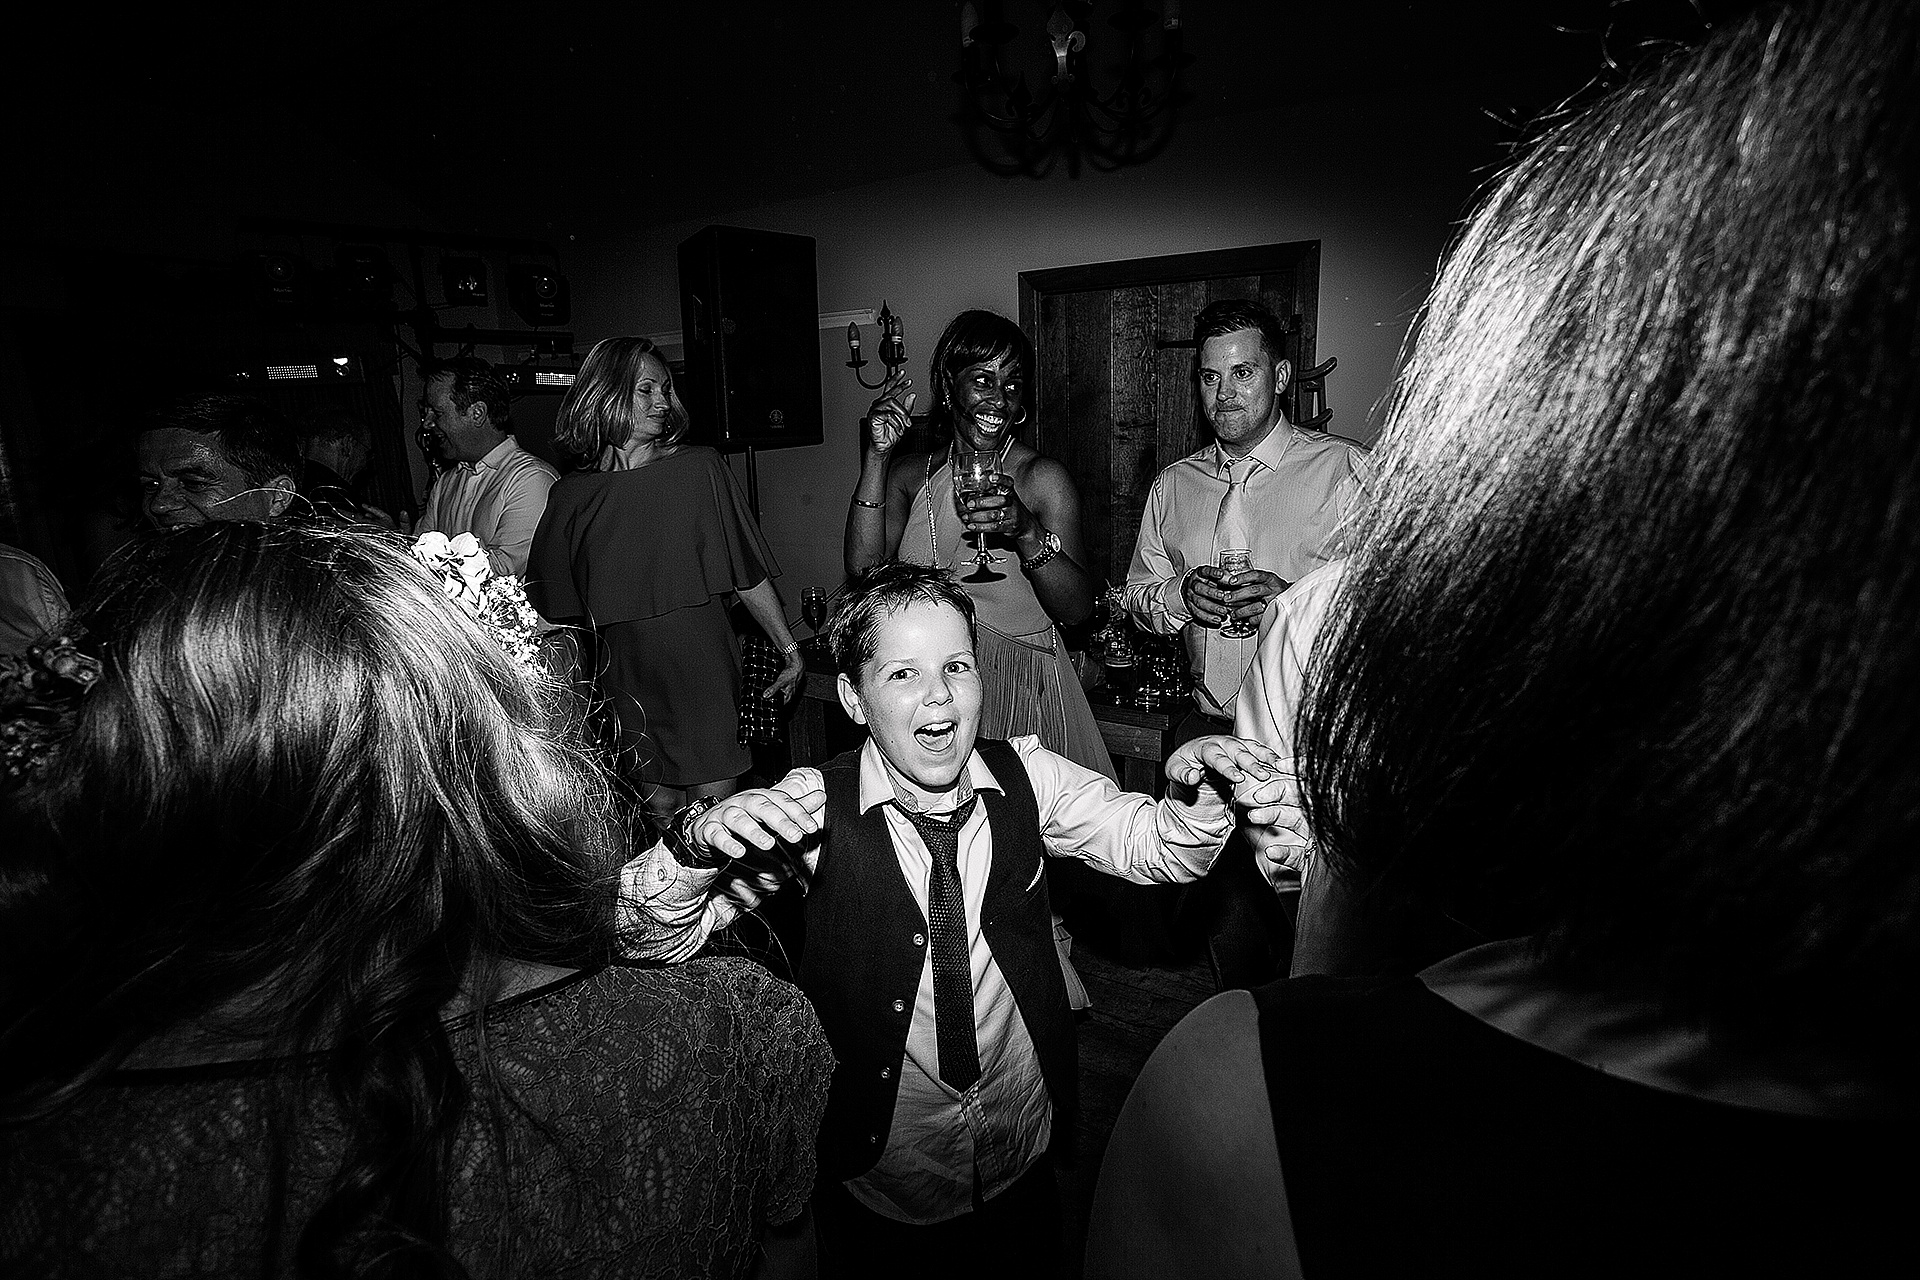 Red Lion Wedding in The Yorkshire Dales from John Day Photography fun wedding evening pictures